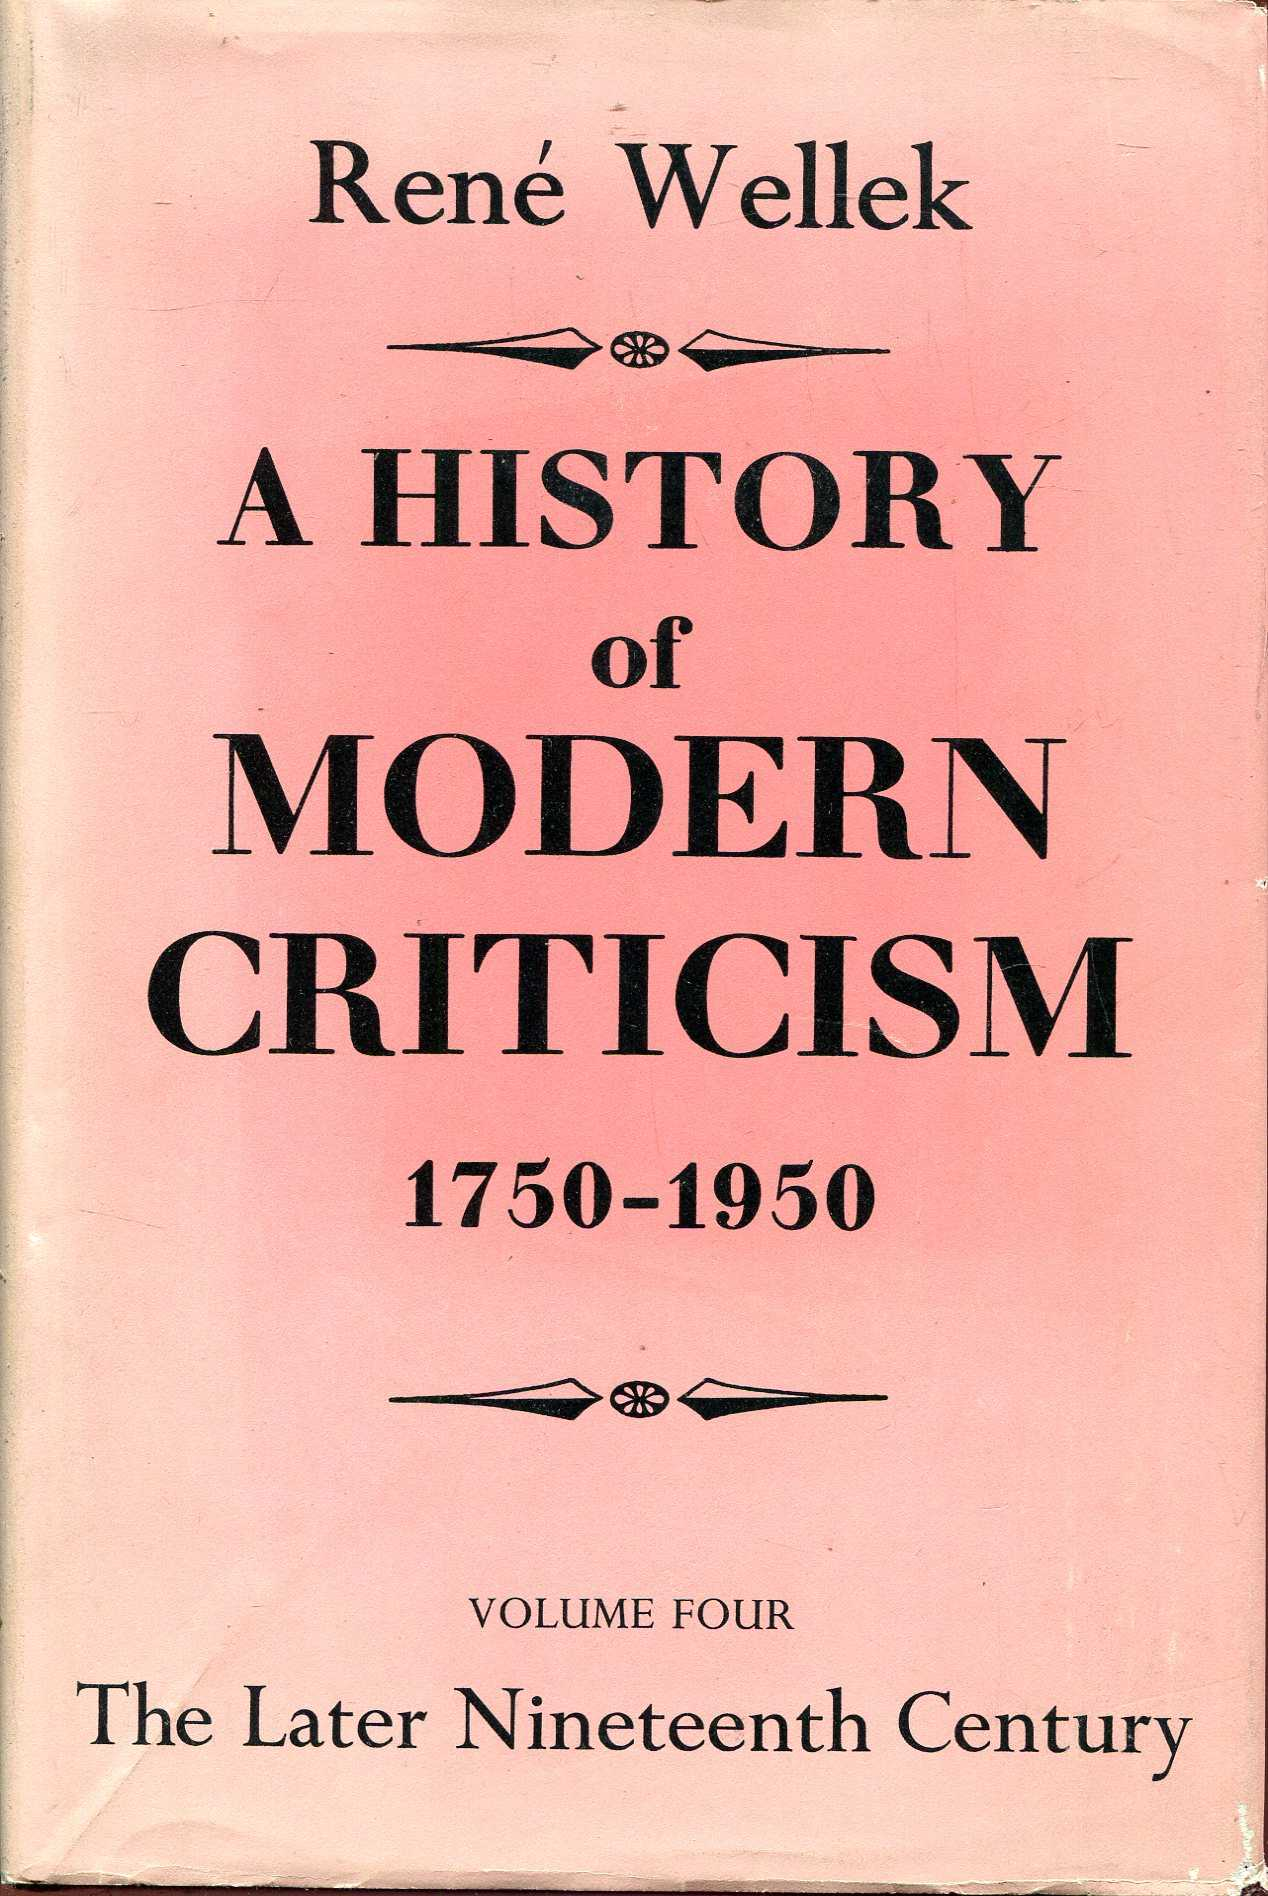 Image for A History of Modern Criticism 1750-1950, volume Four : the Later Nineteenth Century